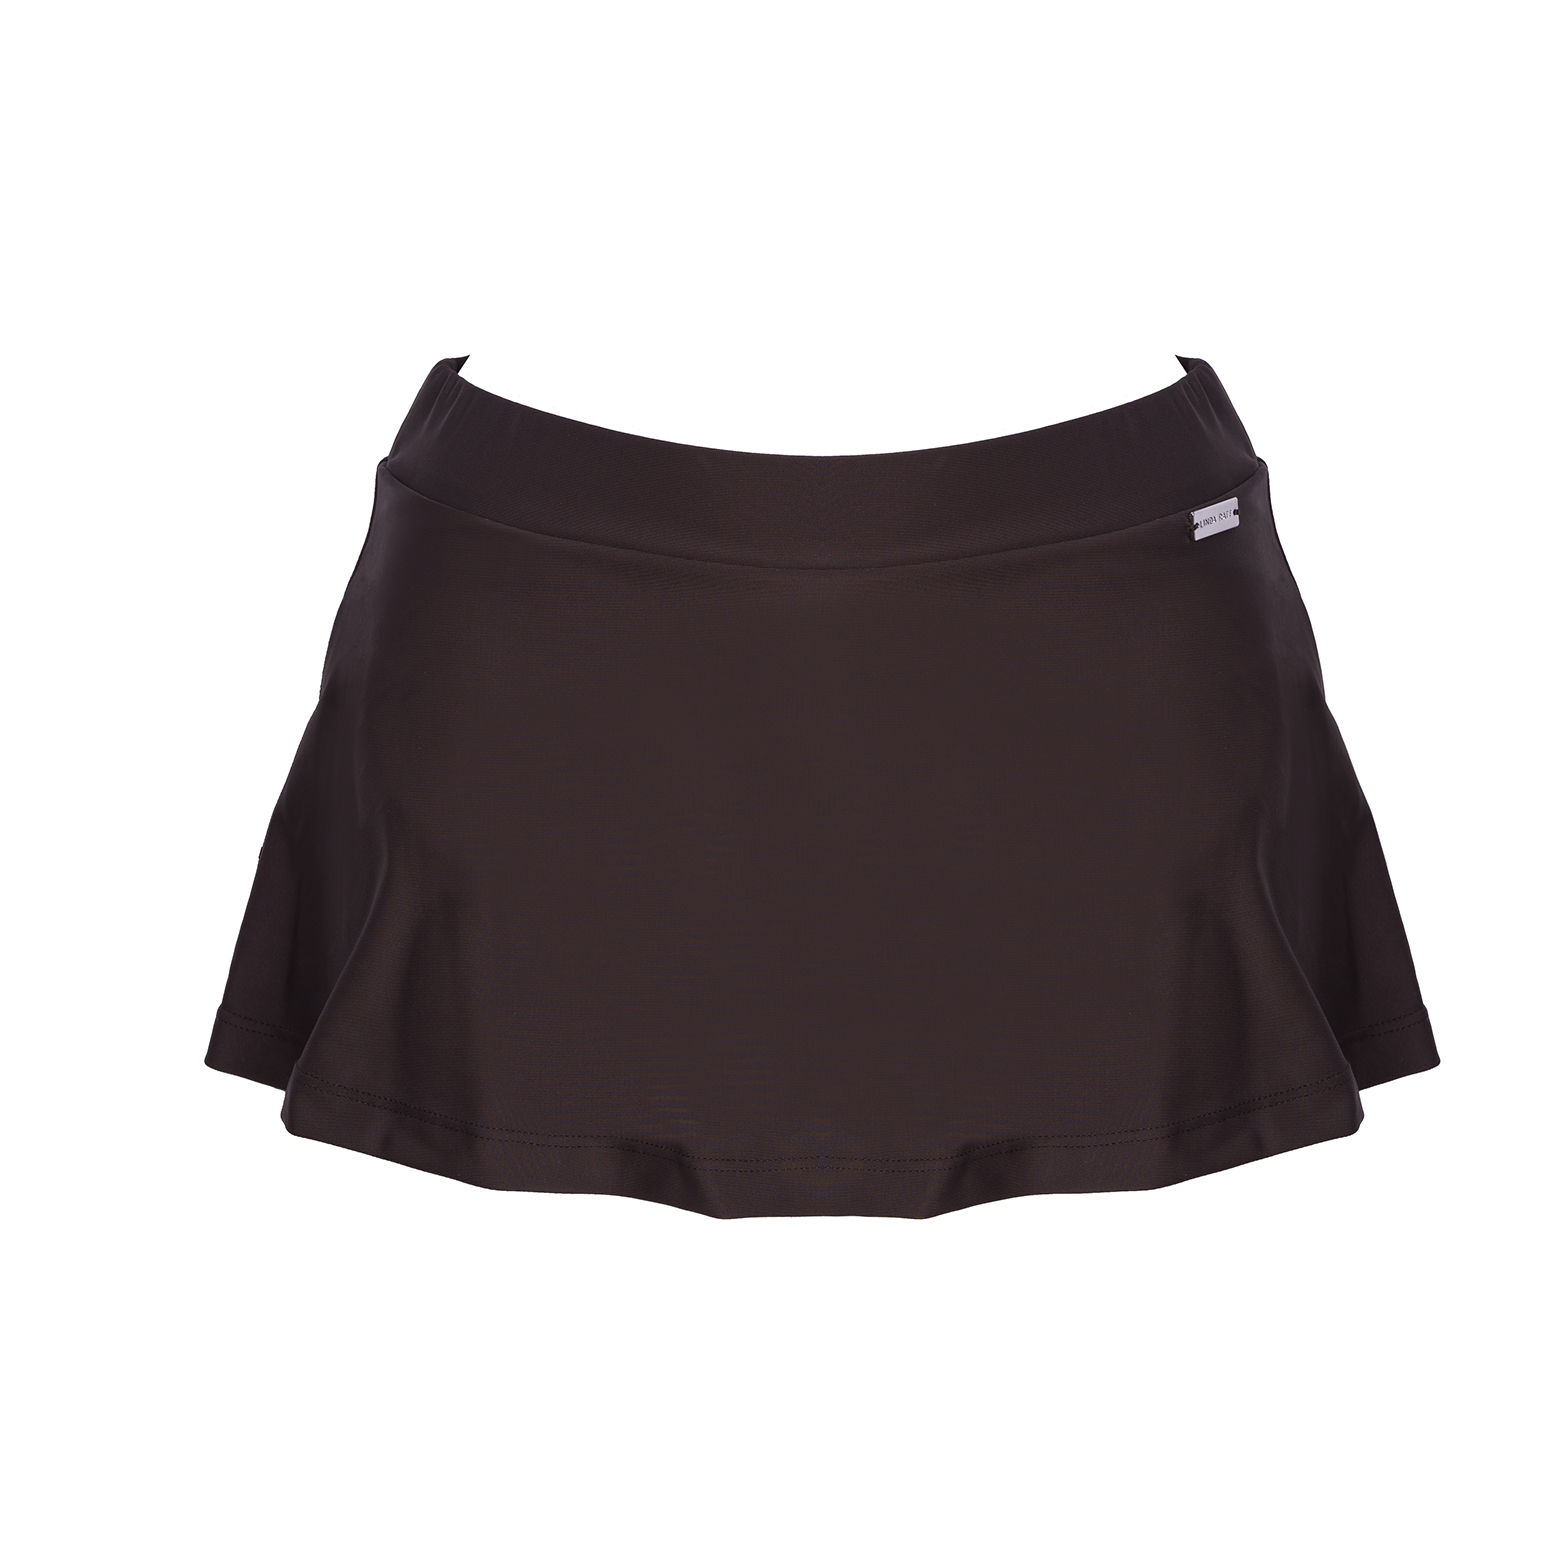 Linda Raff Collection -SLIP SKIRT ECO CHOCO